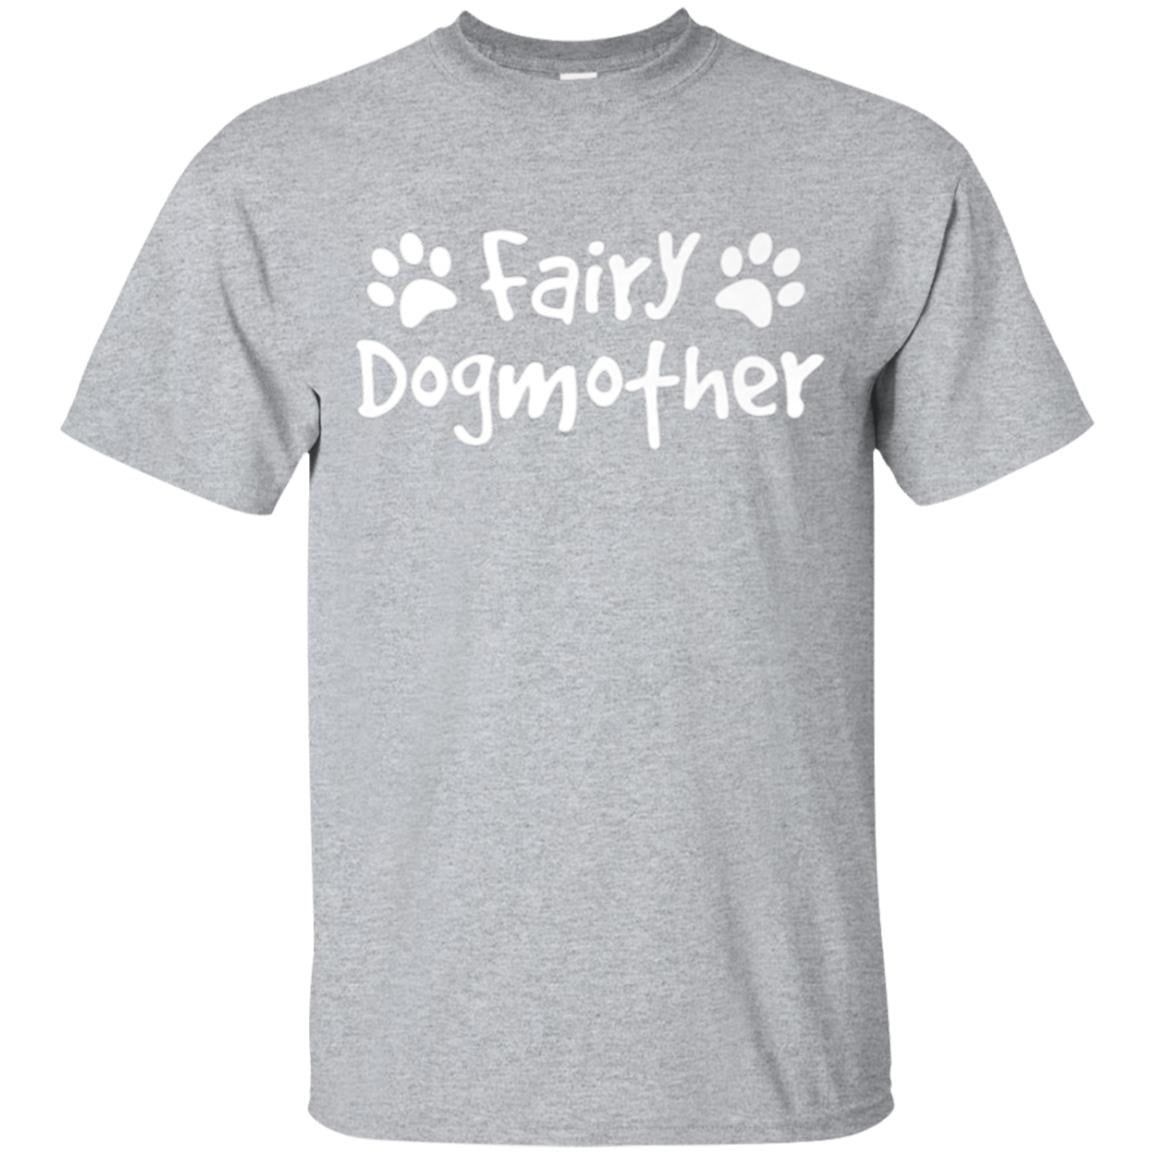 Fairy Dog Mother Shirt, Puppy Paw Mom Tee For Dog Owner 99promocode